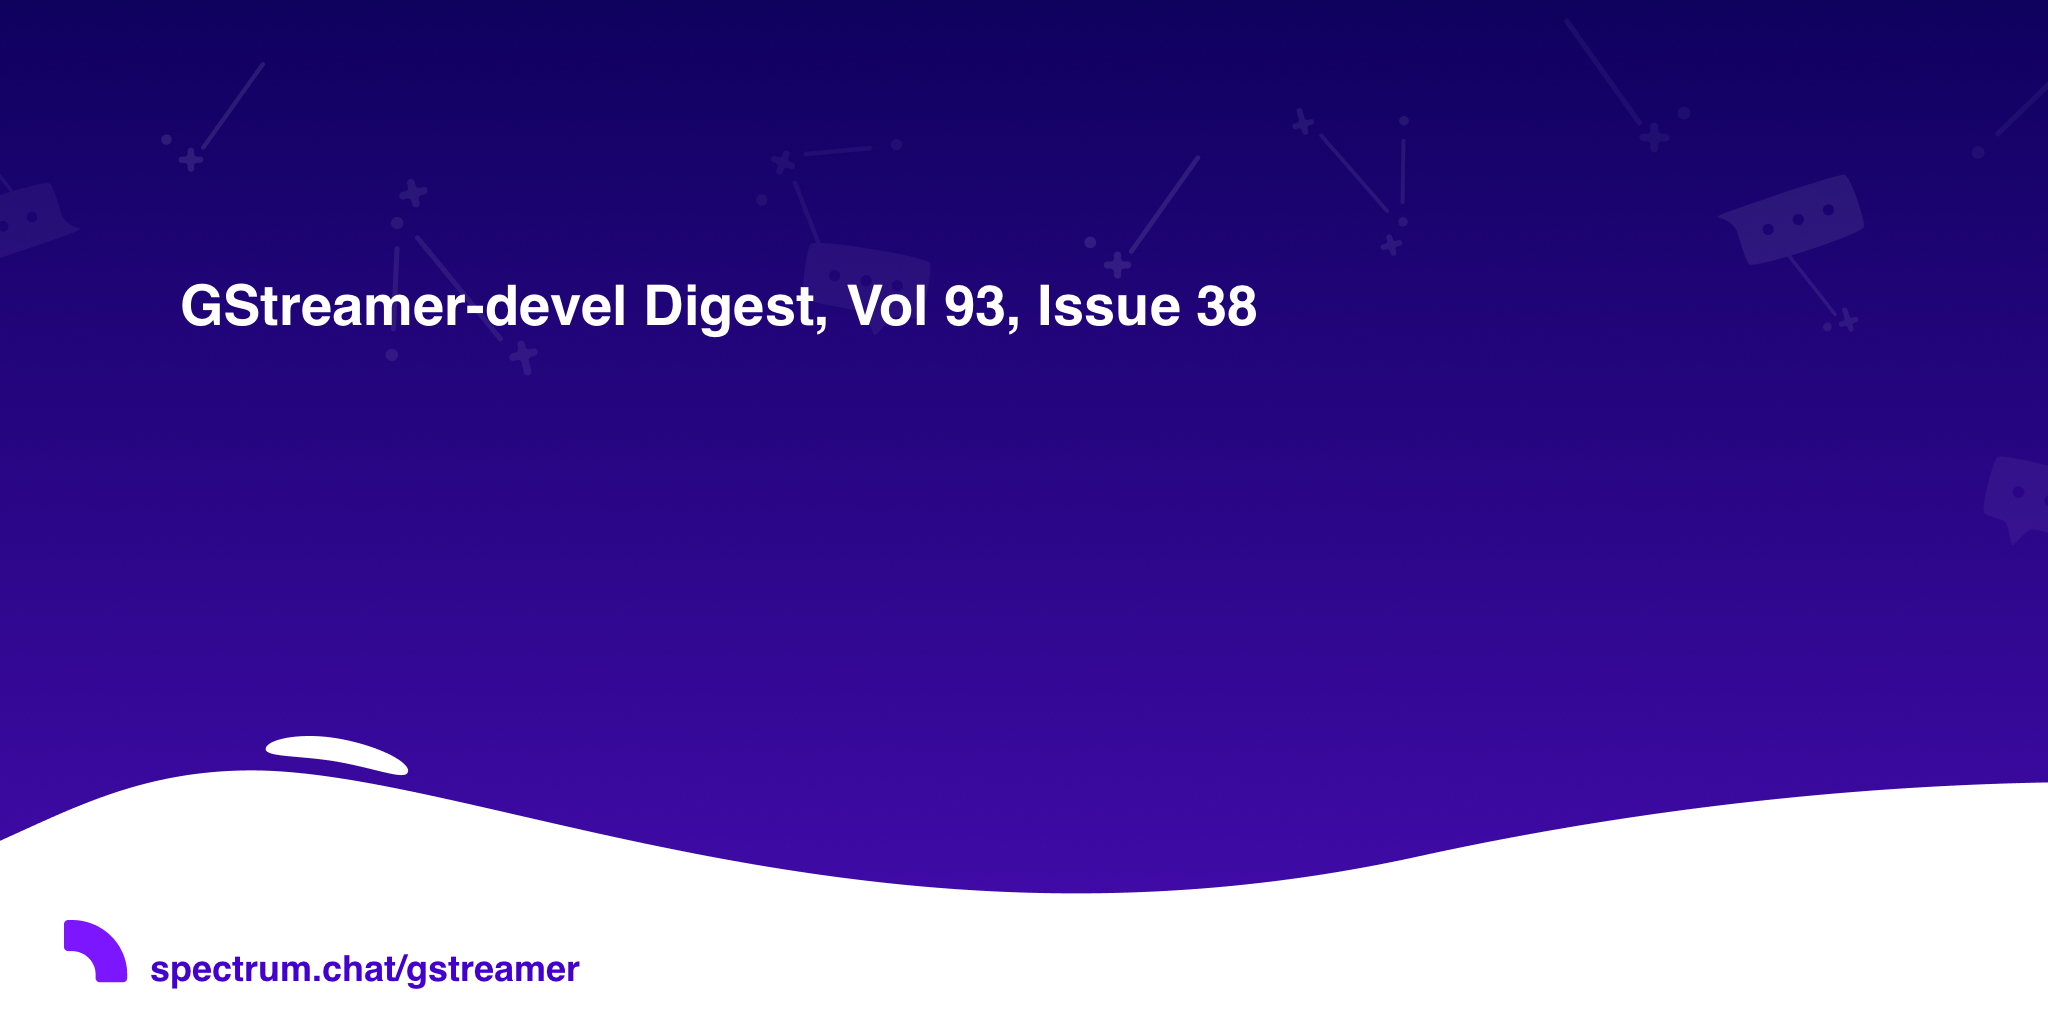 GStreamer-devel Digest, Vol 93, Issue 38 · GStreamer